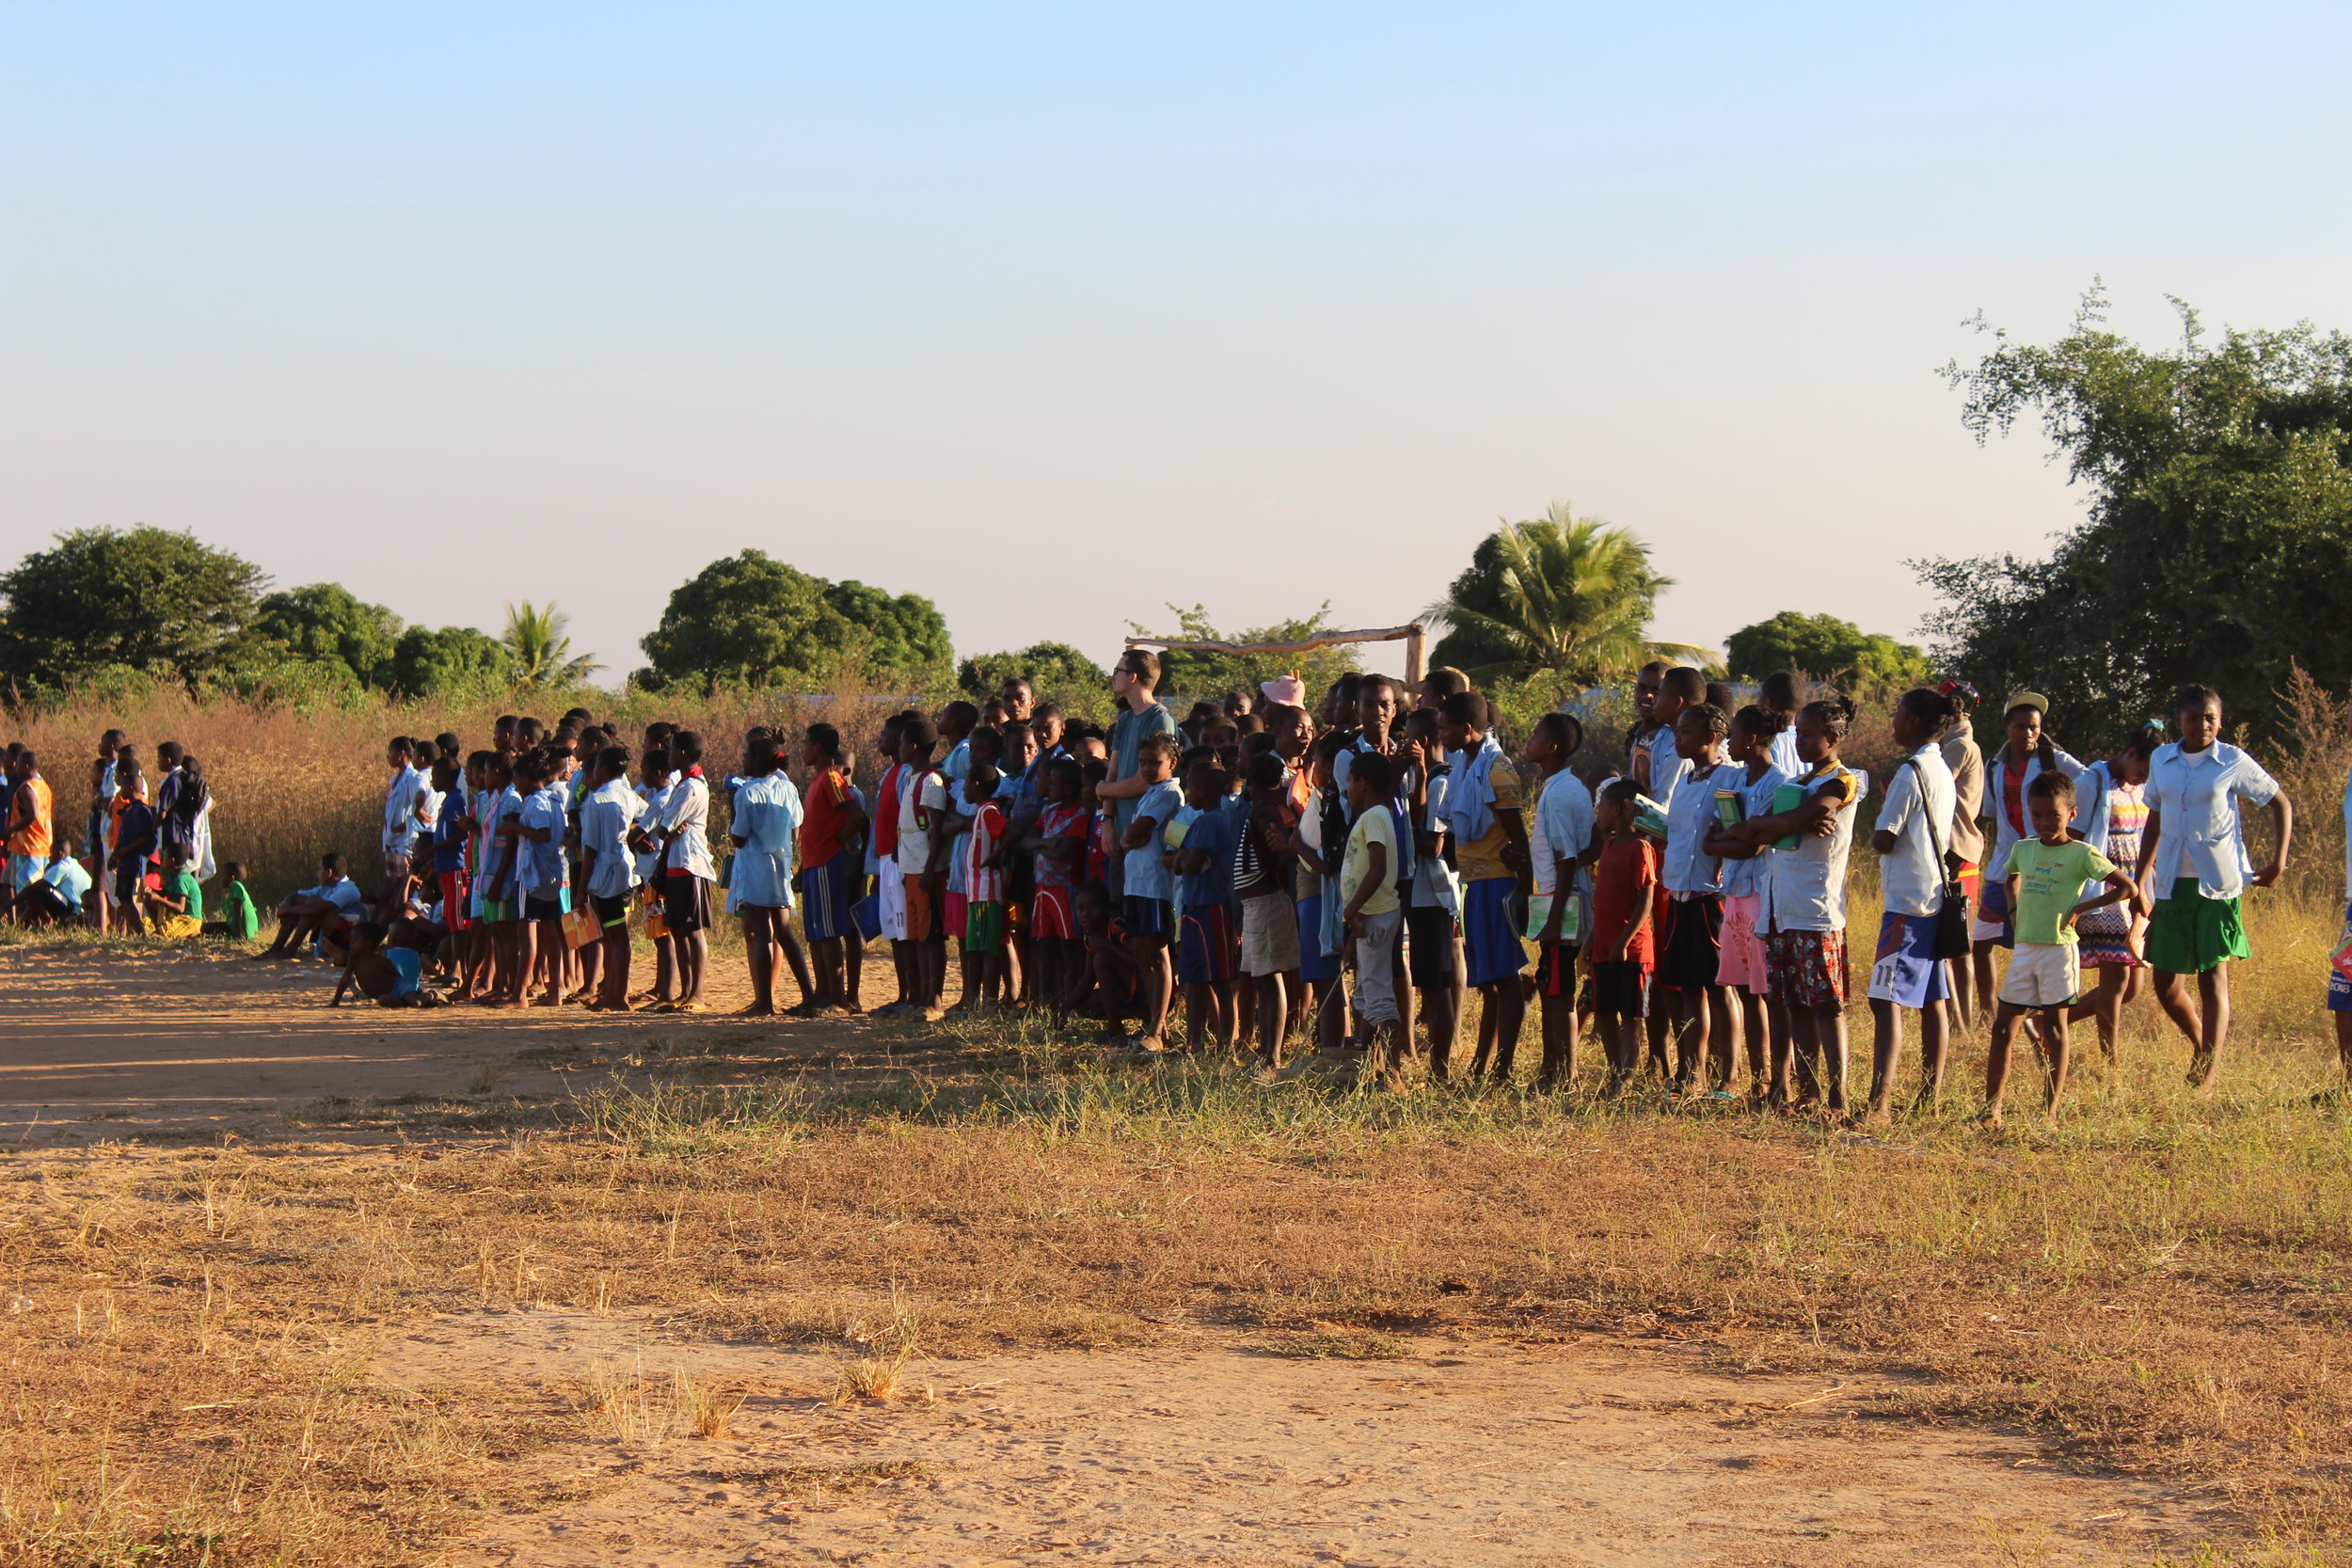 Seemingly in the middle of nowhere in Madagascar, a soccer game was taking place.